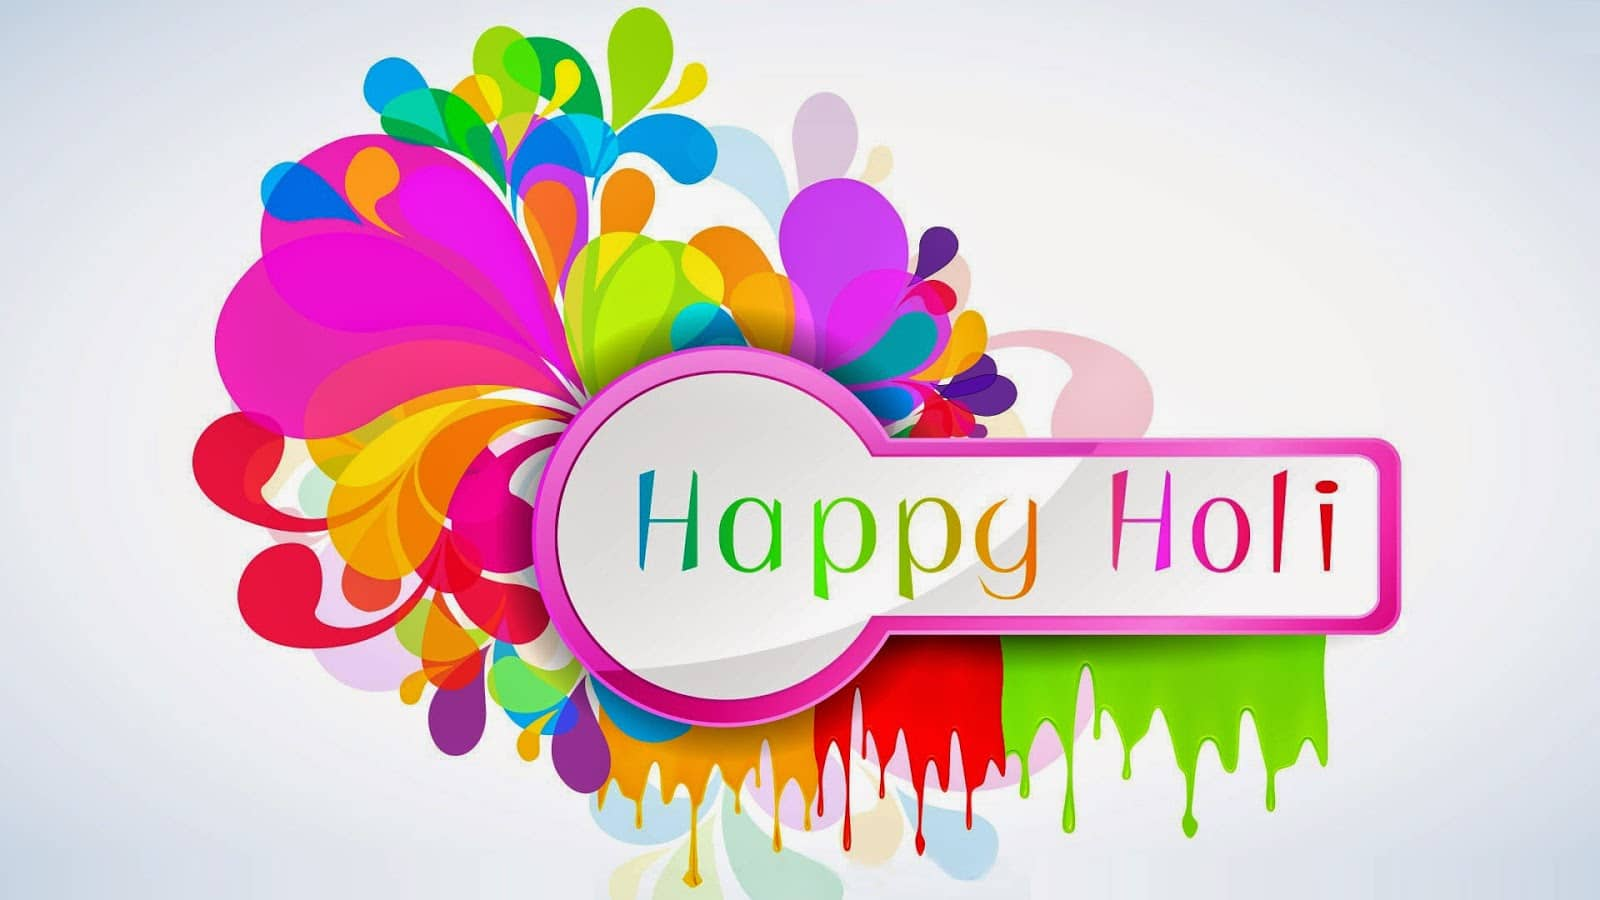 Happy Holi 2017 wallpaper download in HD